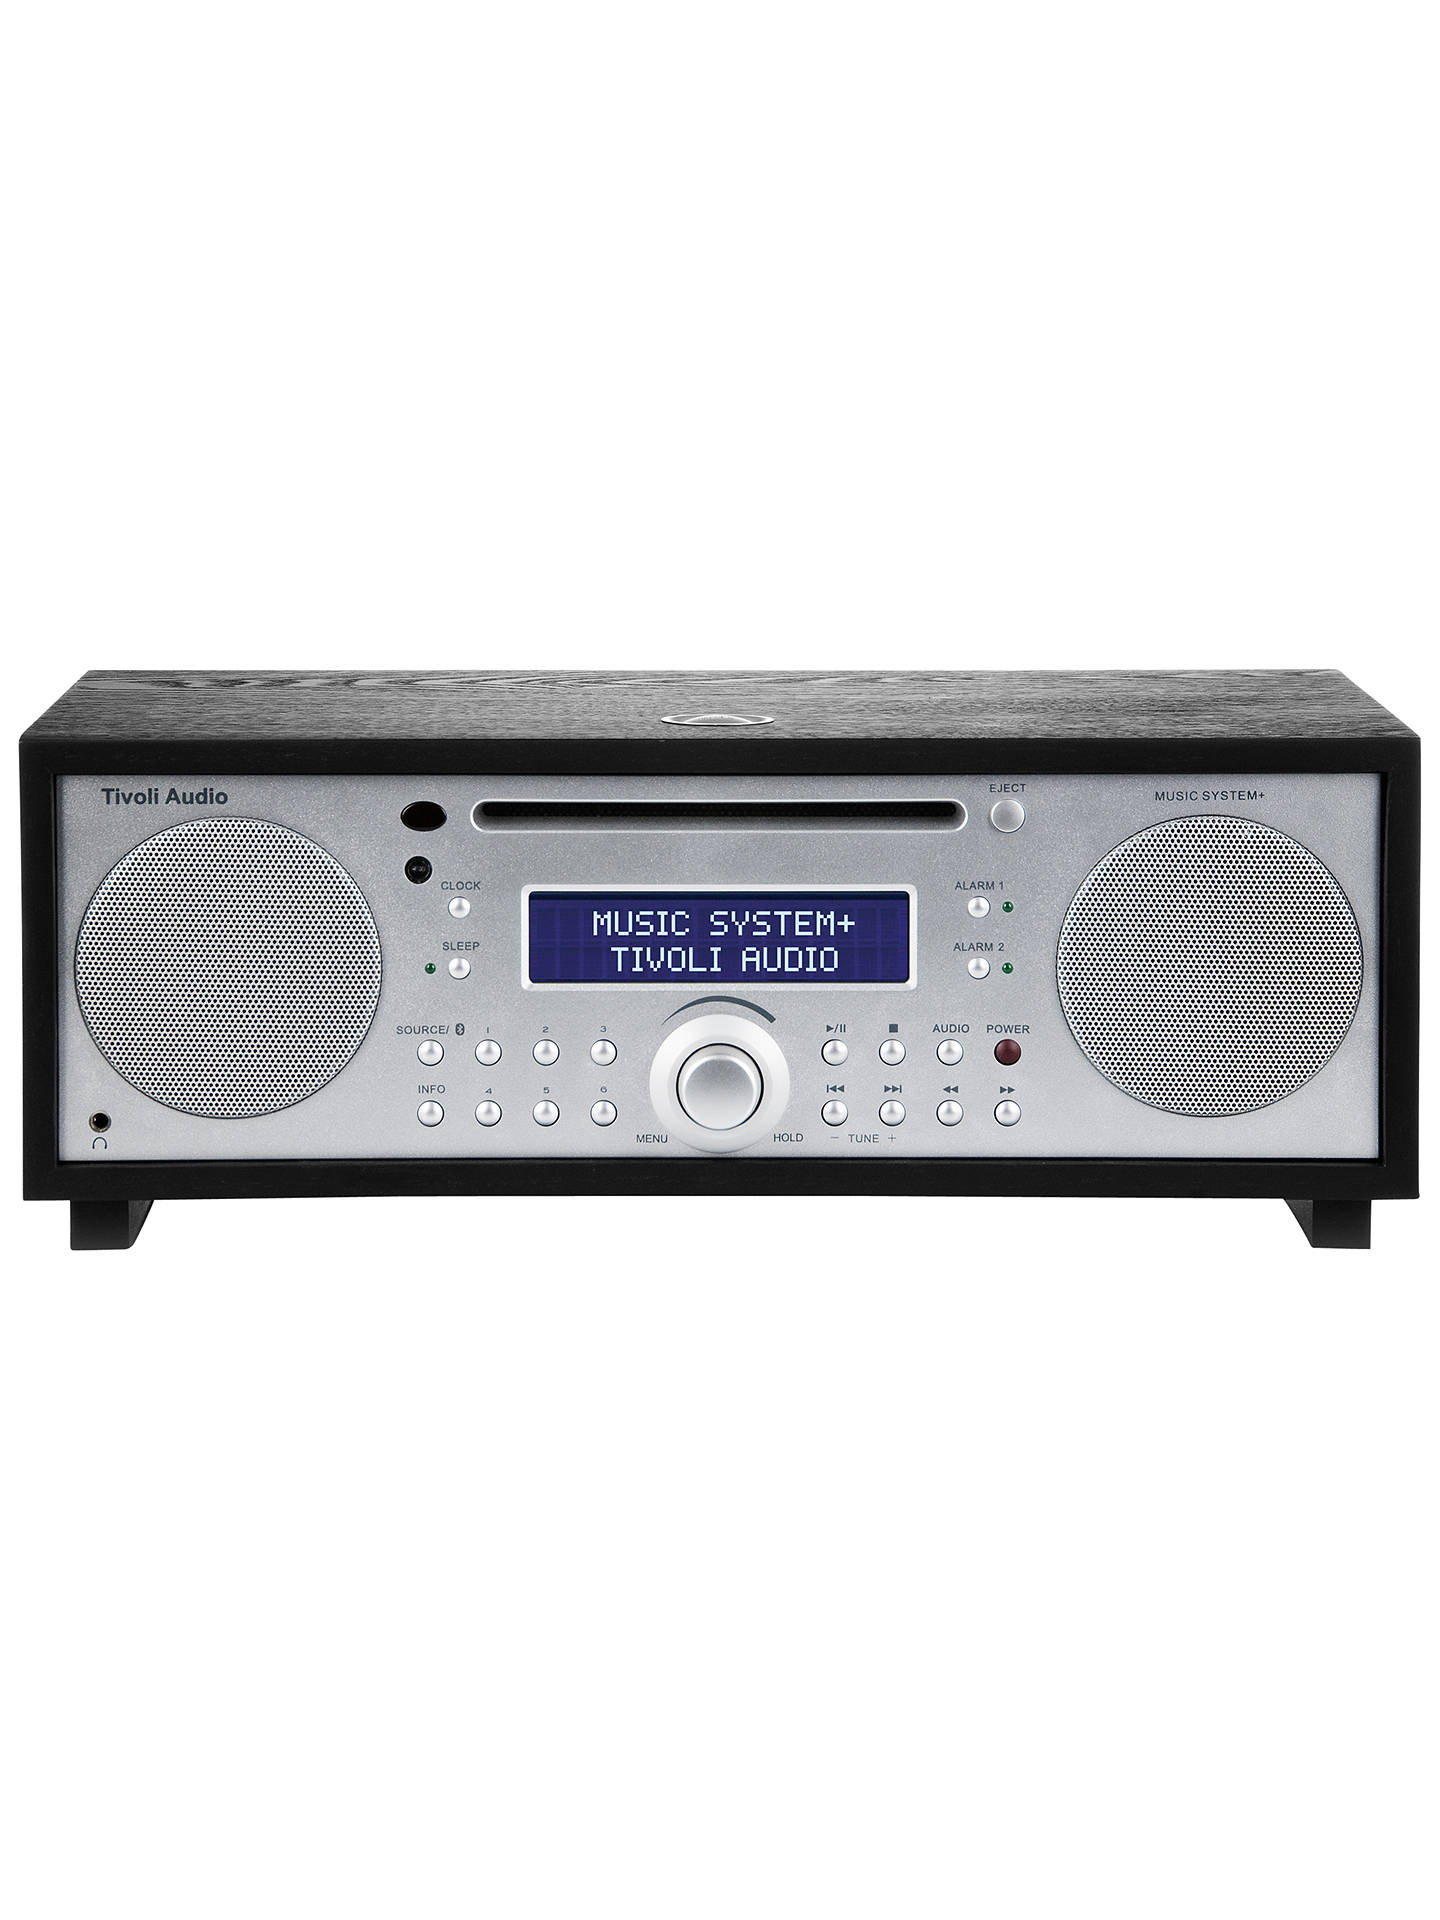 Buy Tivoli Audio Music System+ DAB/FM/CD Bluetooth Micro System, Black Ash Online at johnlewis.com